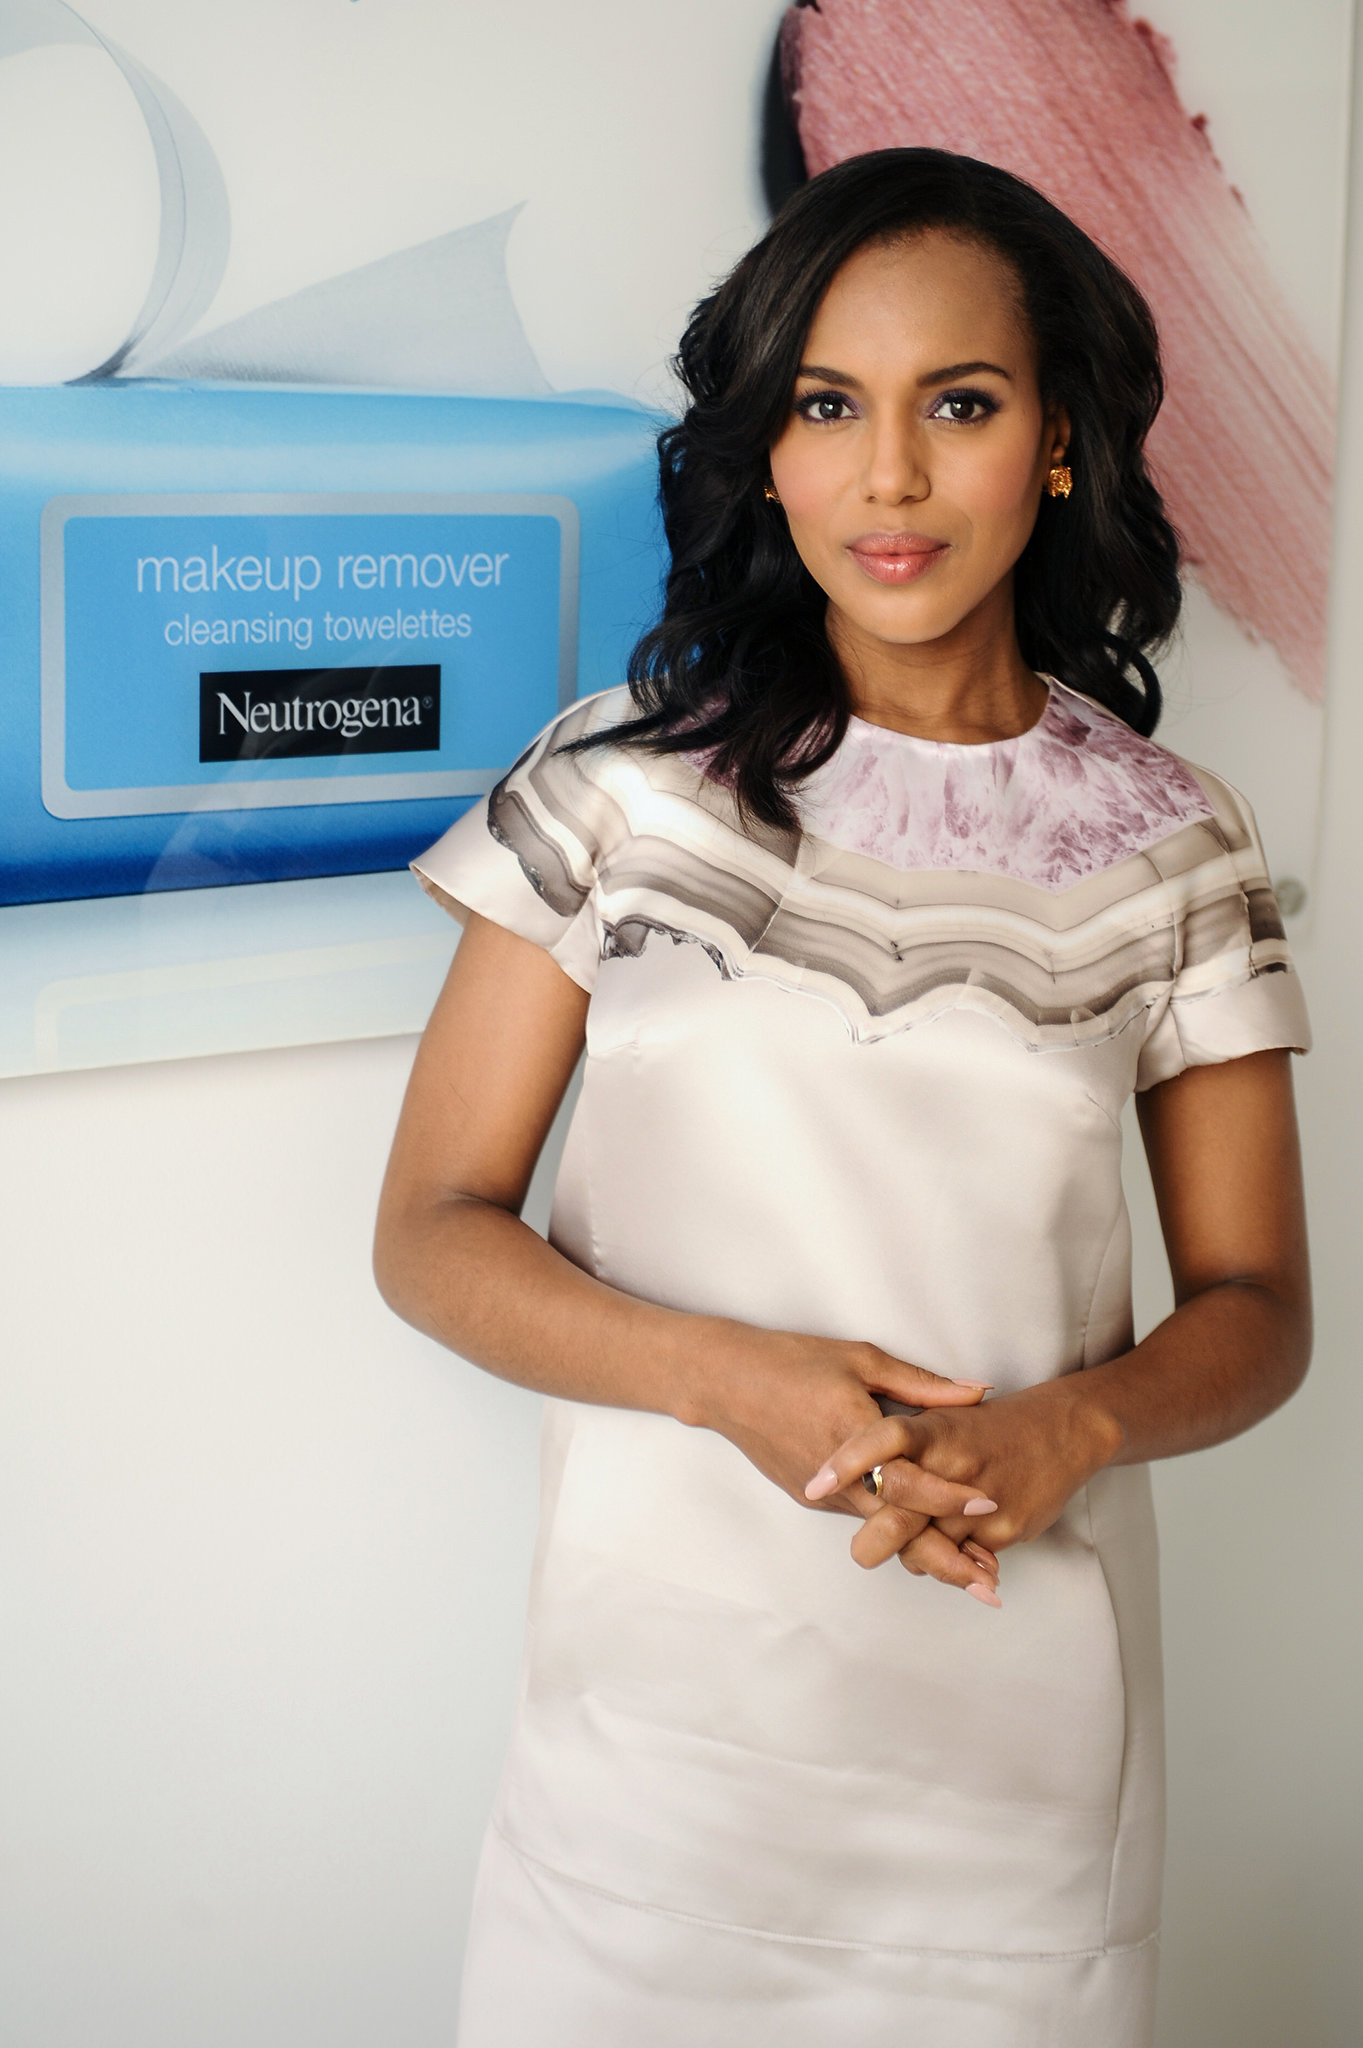 When Neutrogena announced that it hired Washington as its new brand ambassador, she celebrated with a simple cream dress with painterly accents.